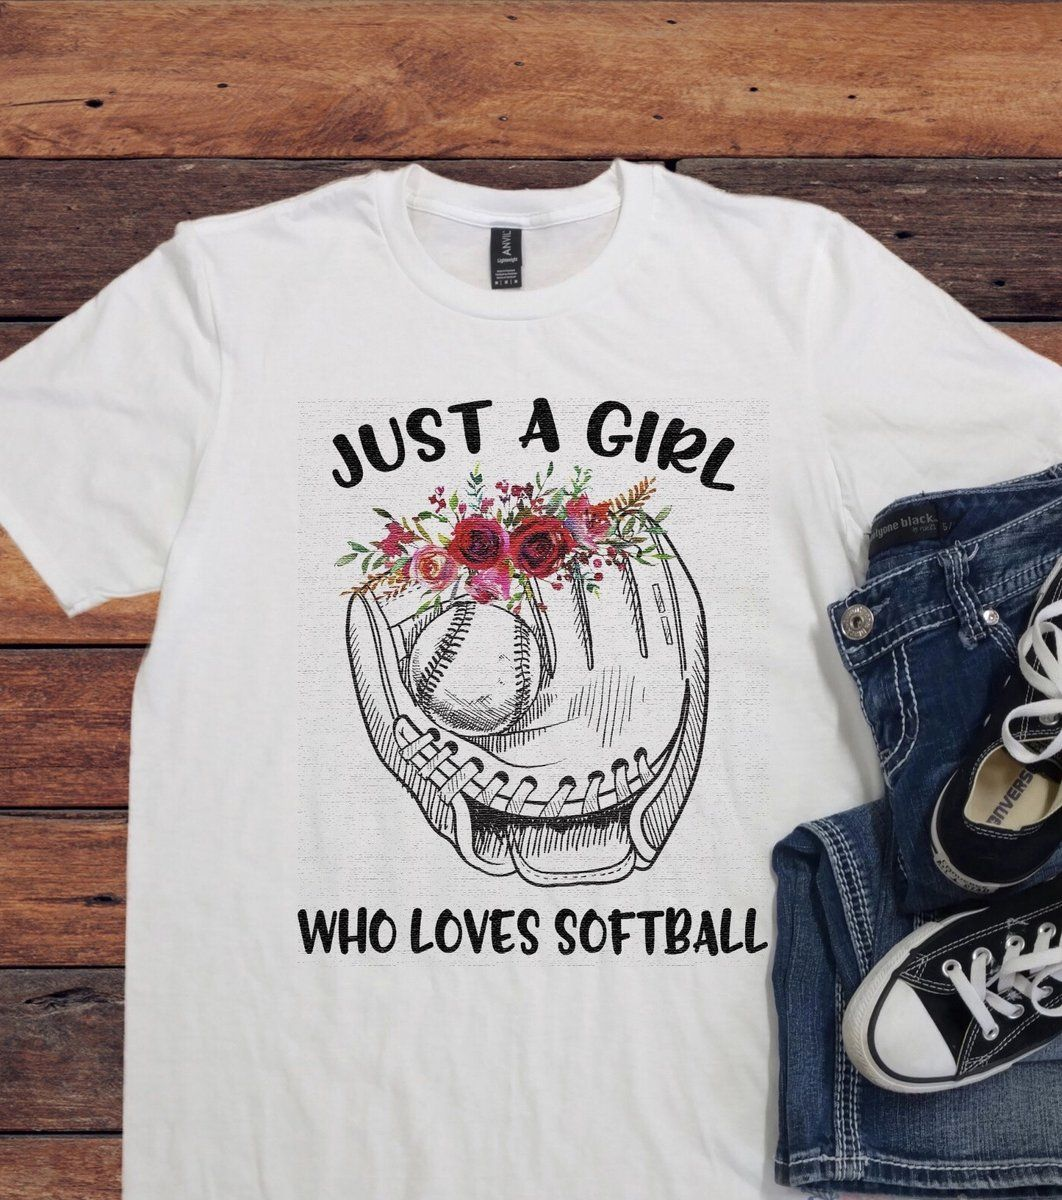 Just a girl who loves softball graphic tshirt simple